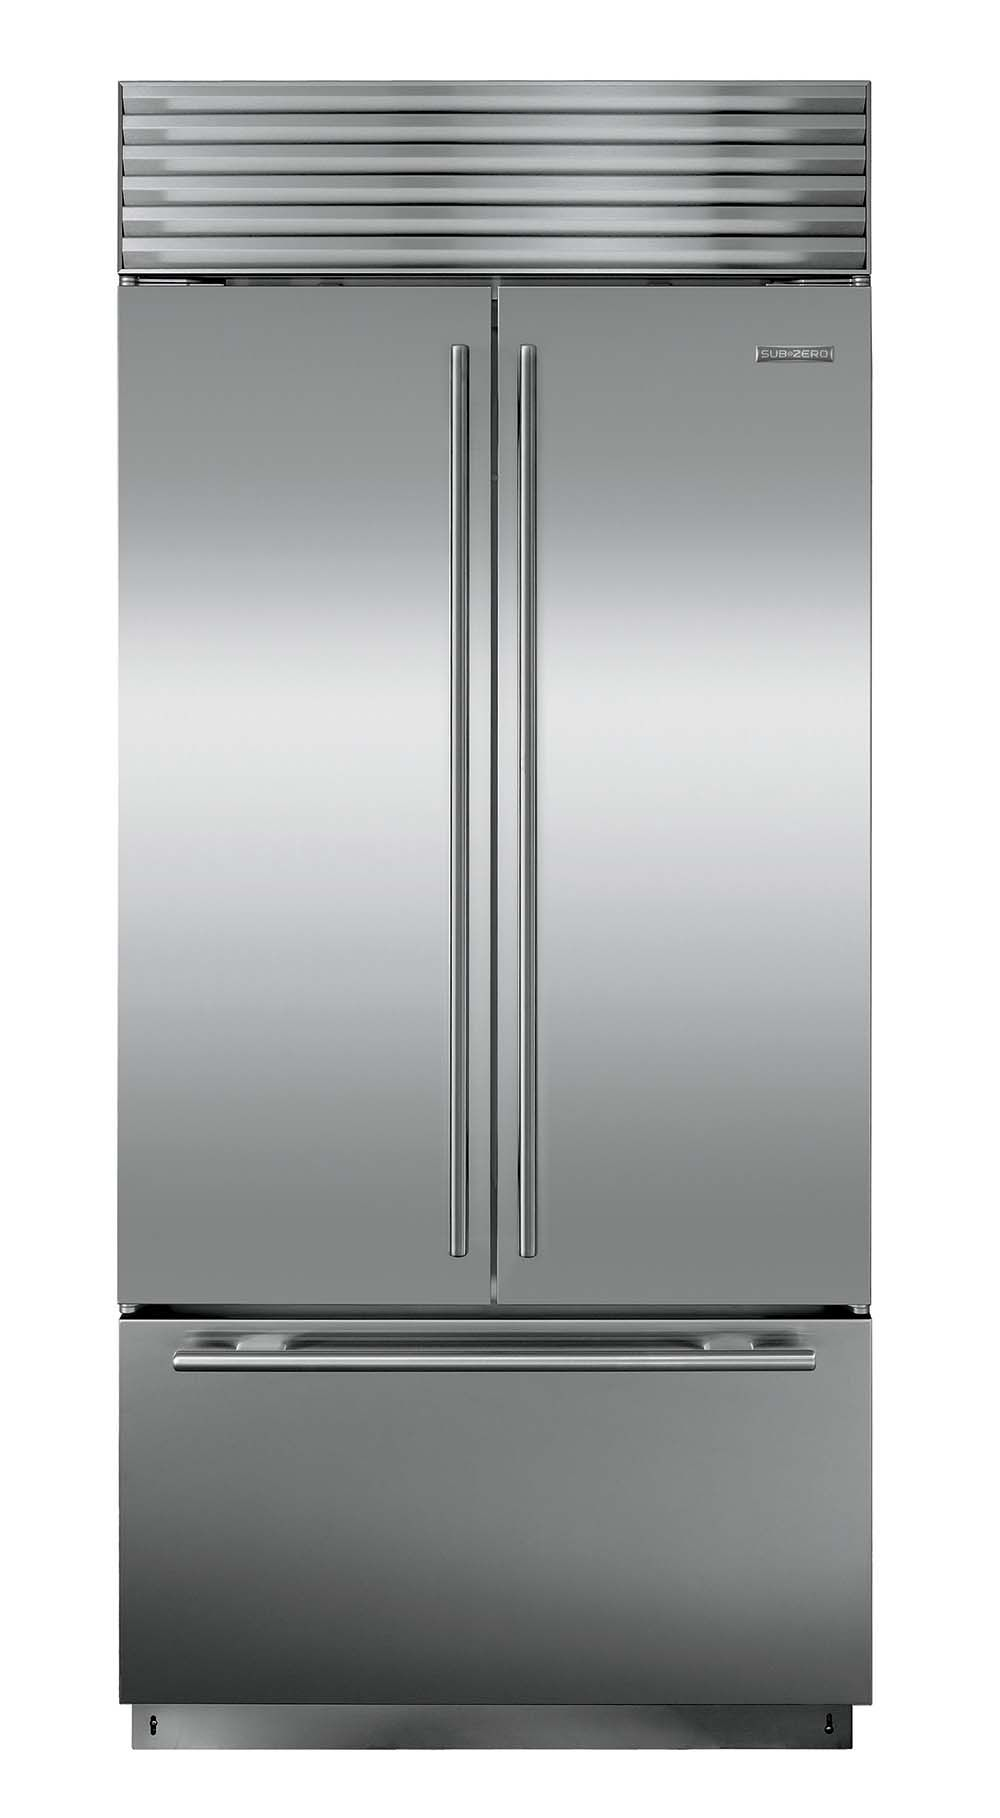 Sub zero counter depth refrigerator - 36 Sub Zero Refrigerator Prices Built In Refrigerators Sub Zero